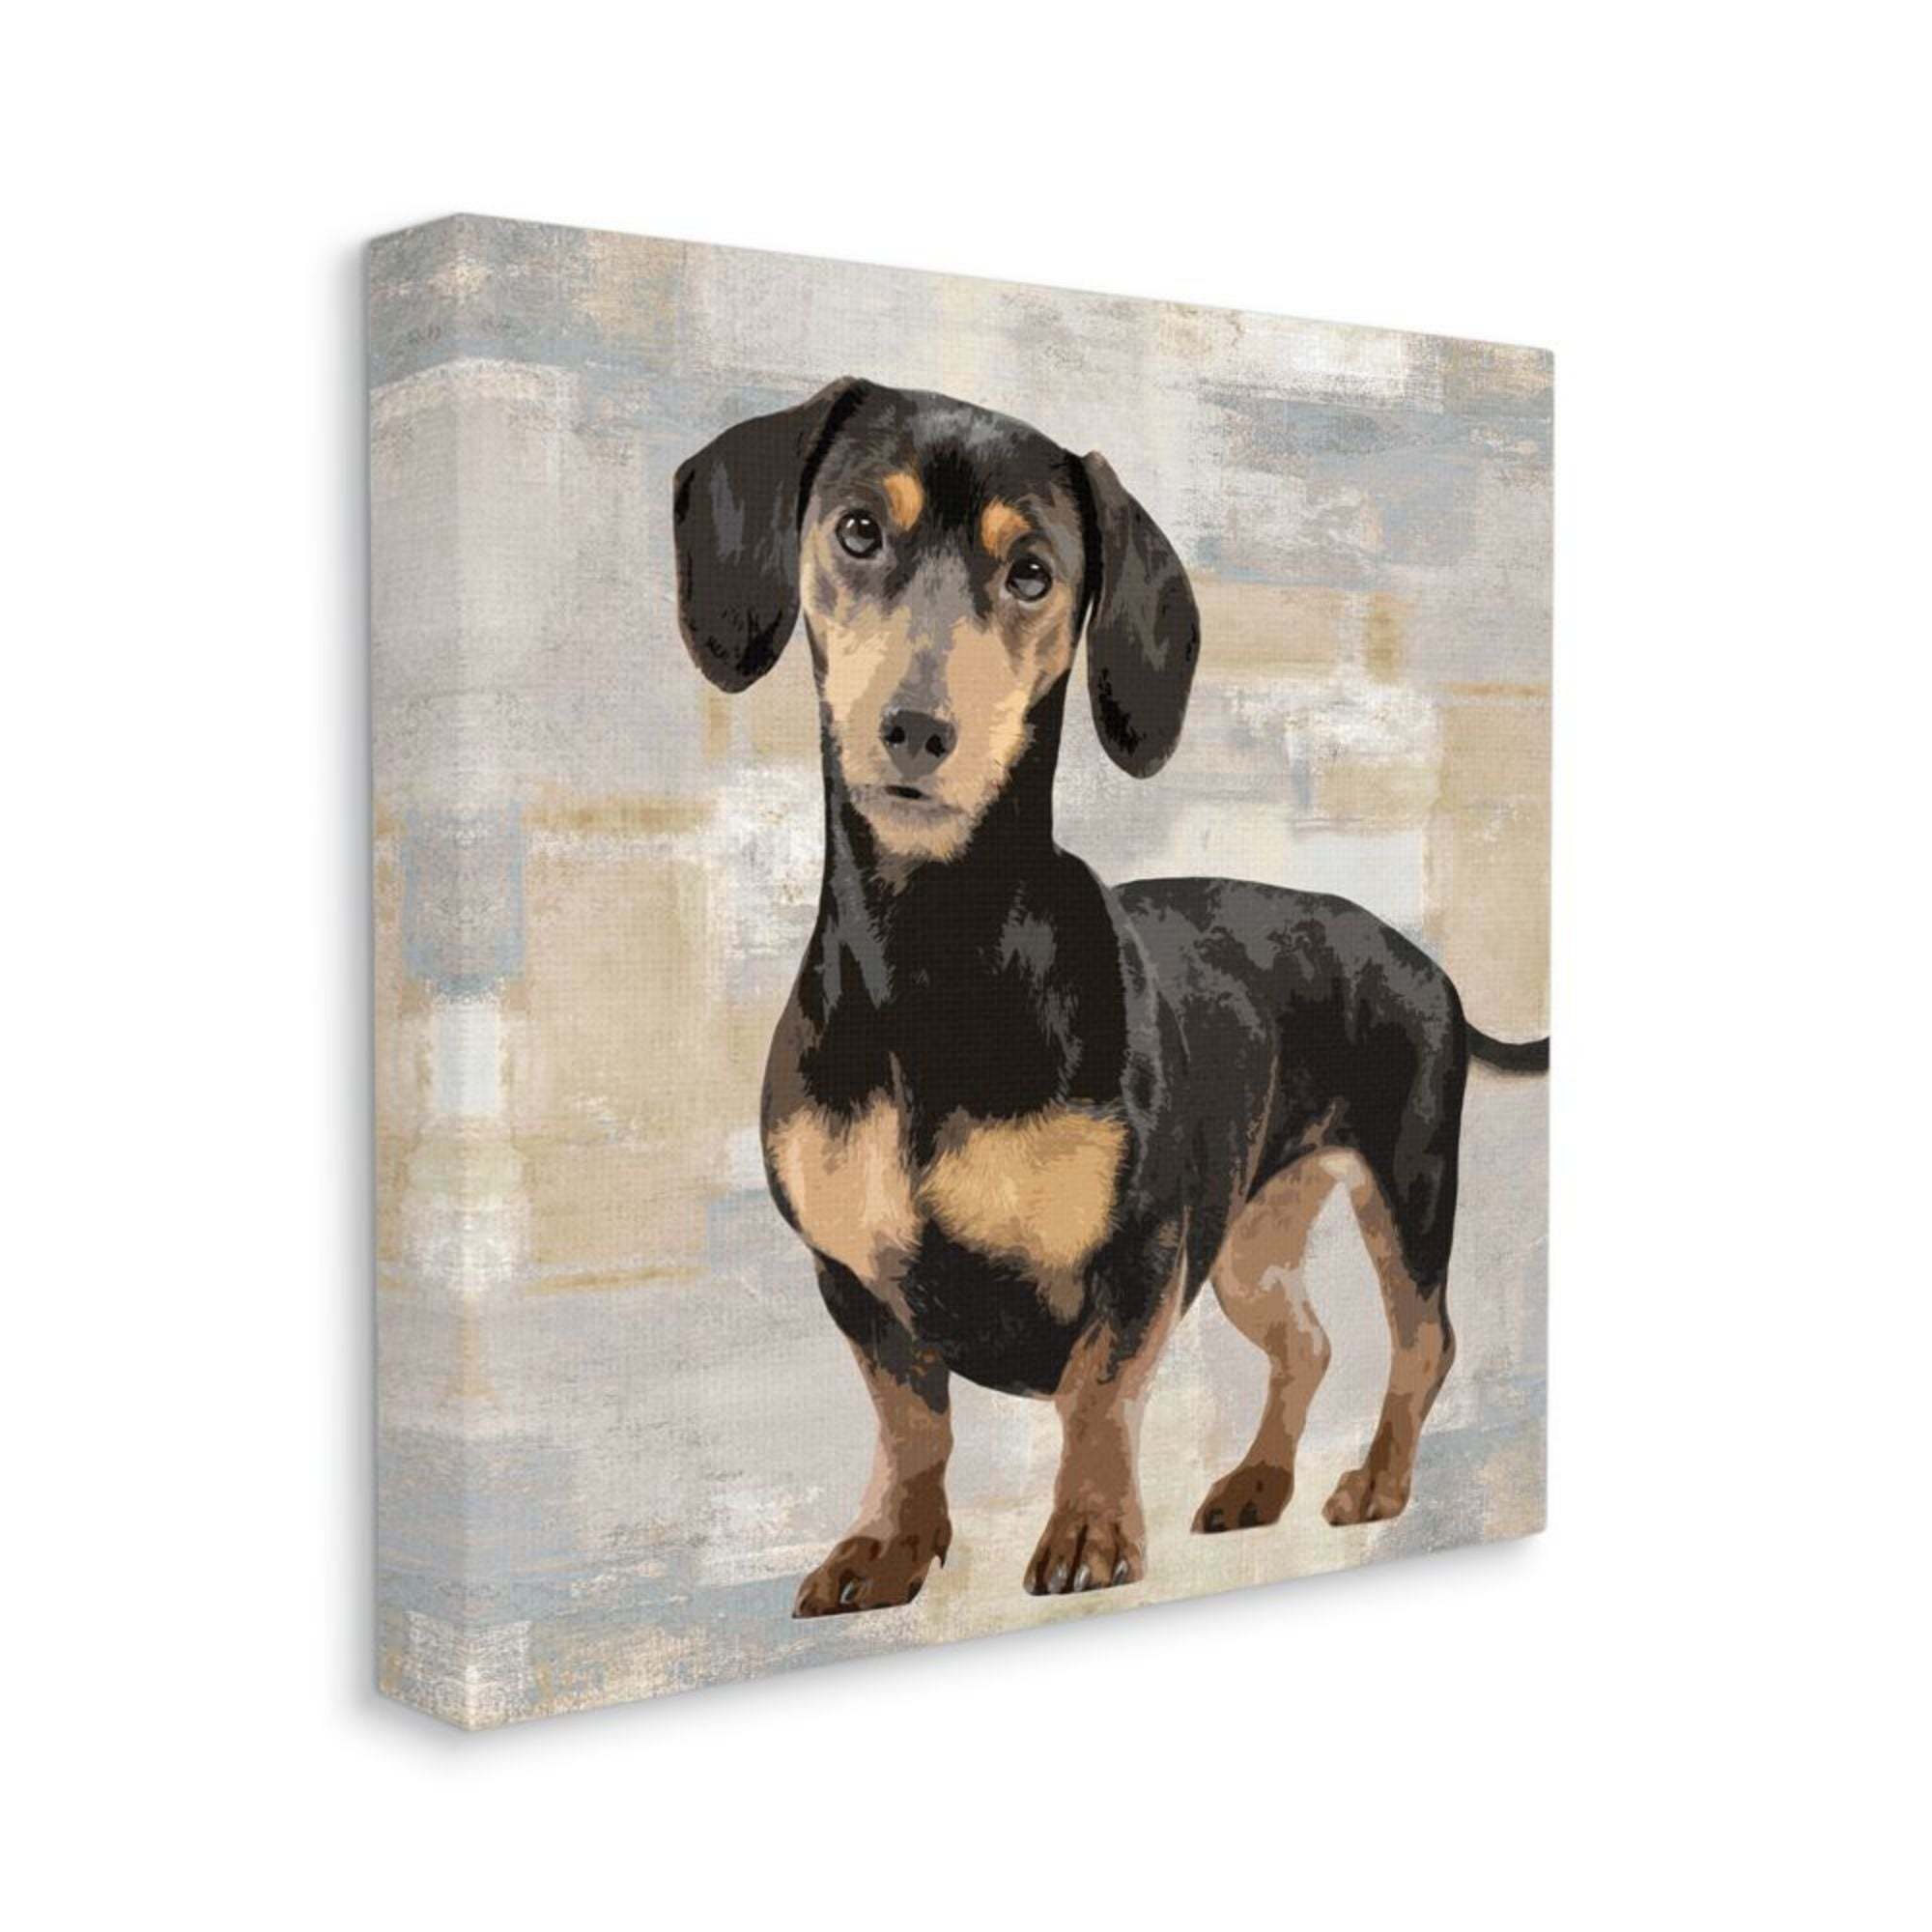 Shop Stupell Industries Dachshund Dog Portrait Neutral Grey Beige Patchwork Canvas Wall Art Overstock 31941651